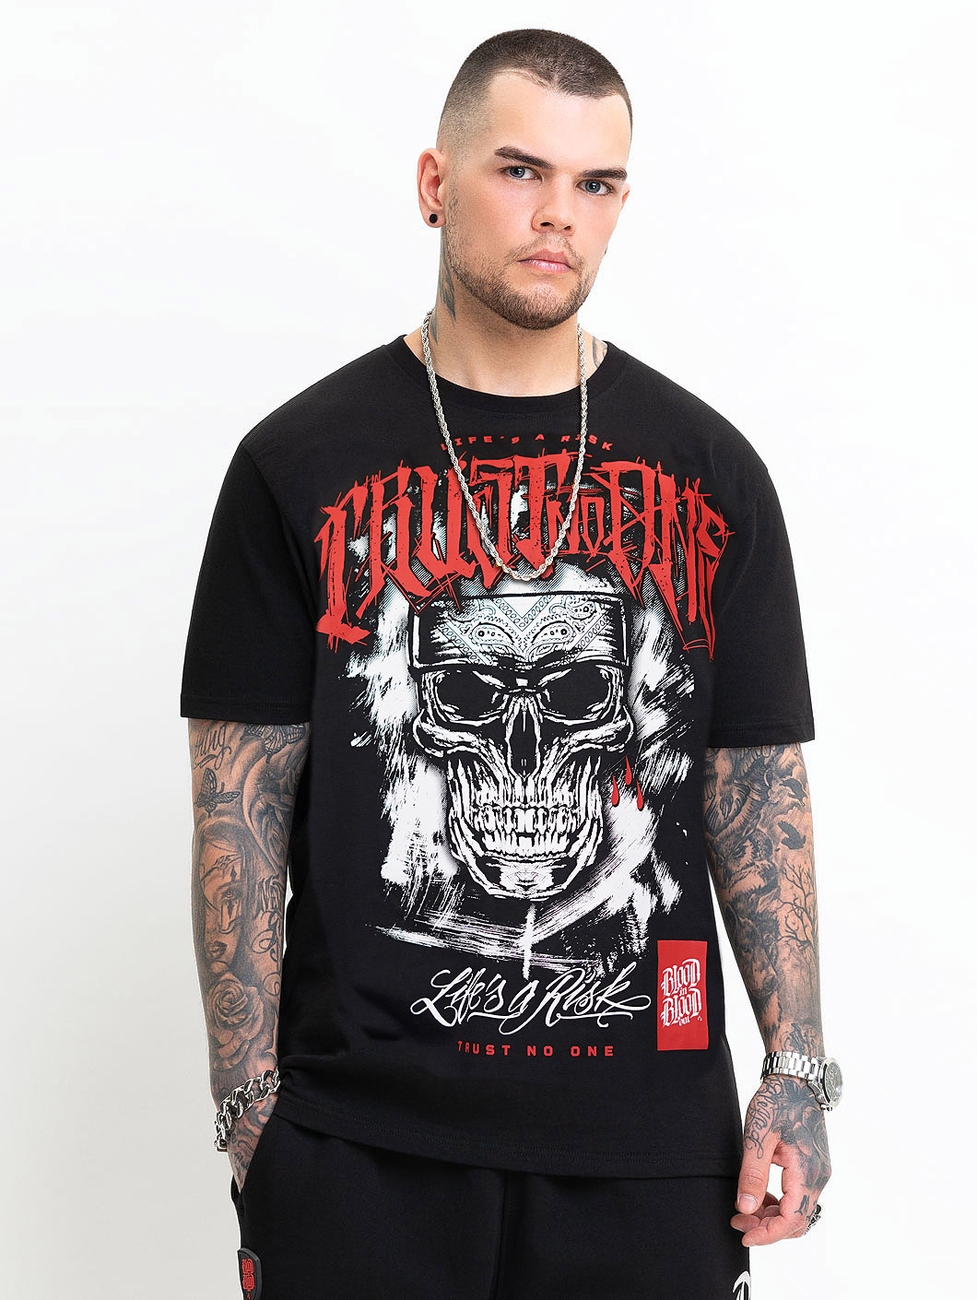 Blood In Blood Out Bandaro T-Shirt 3XL